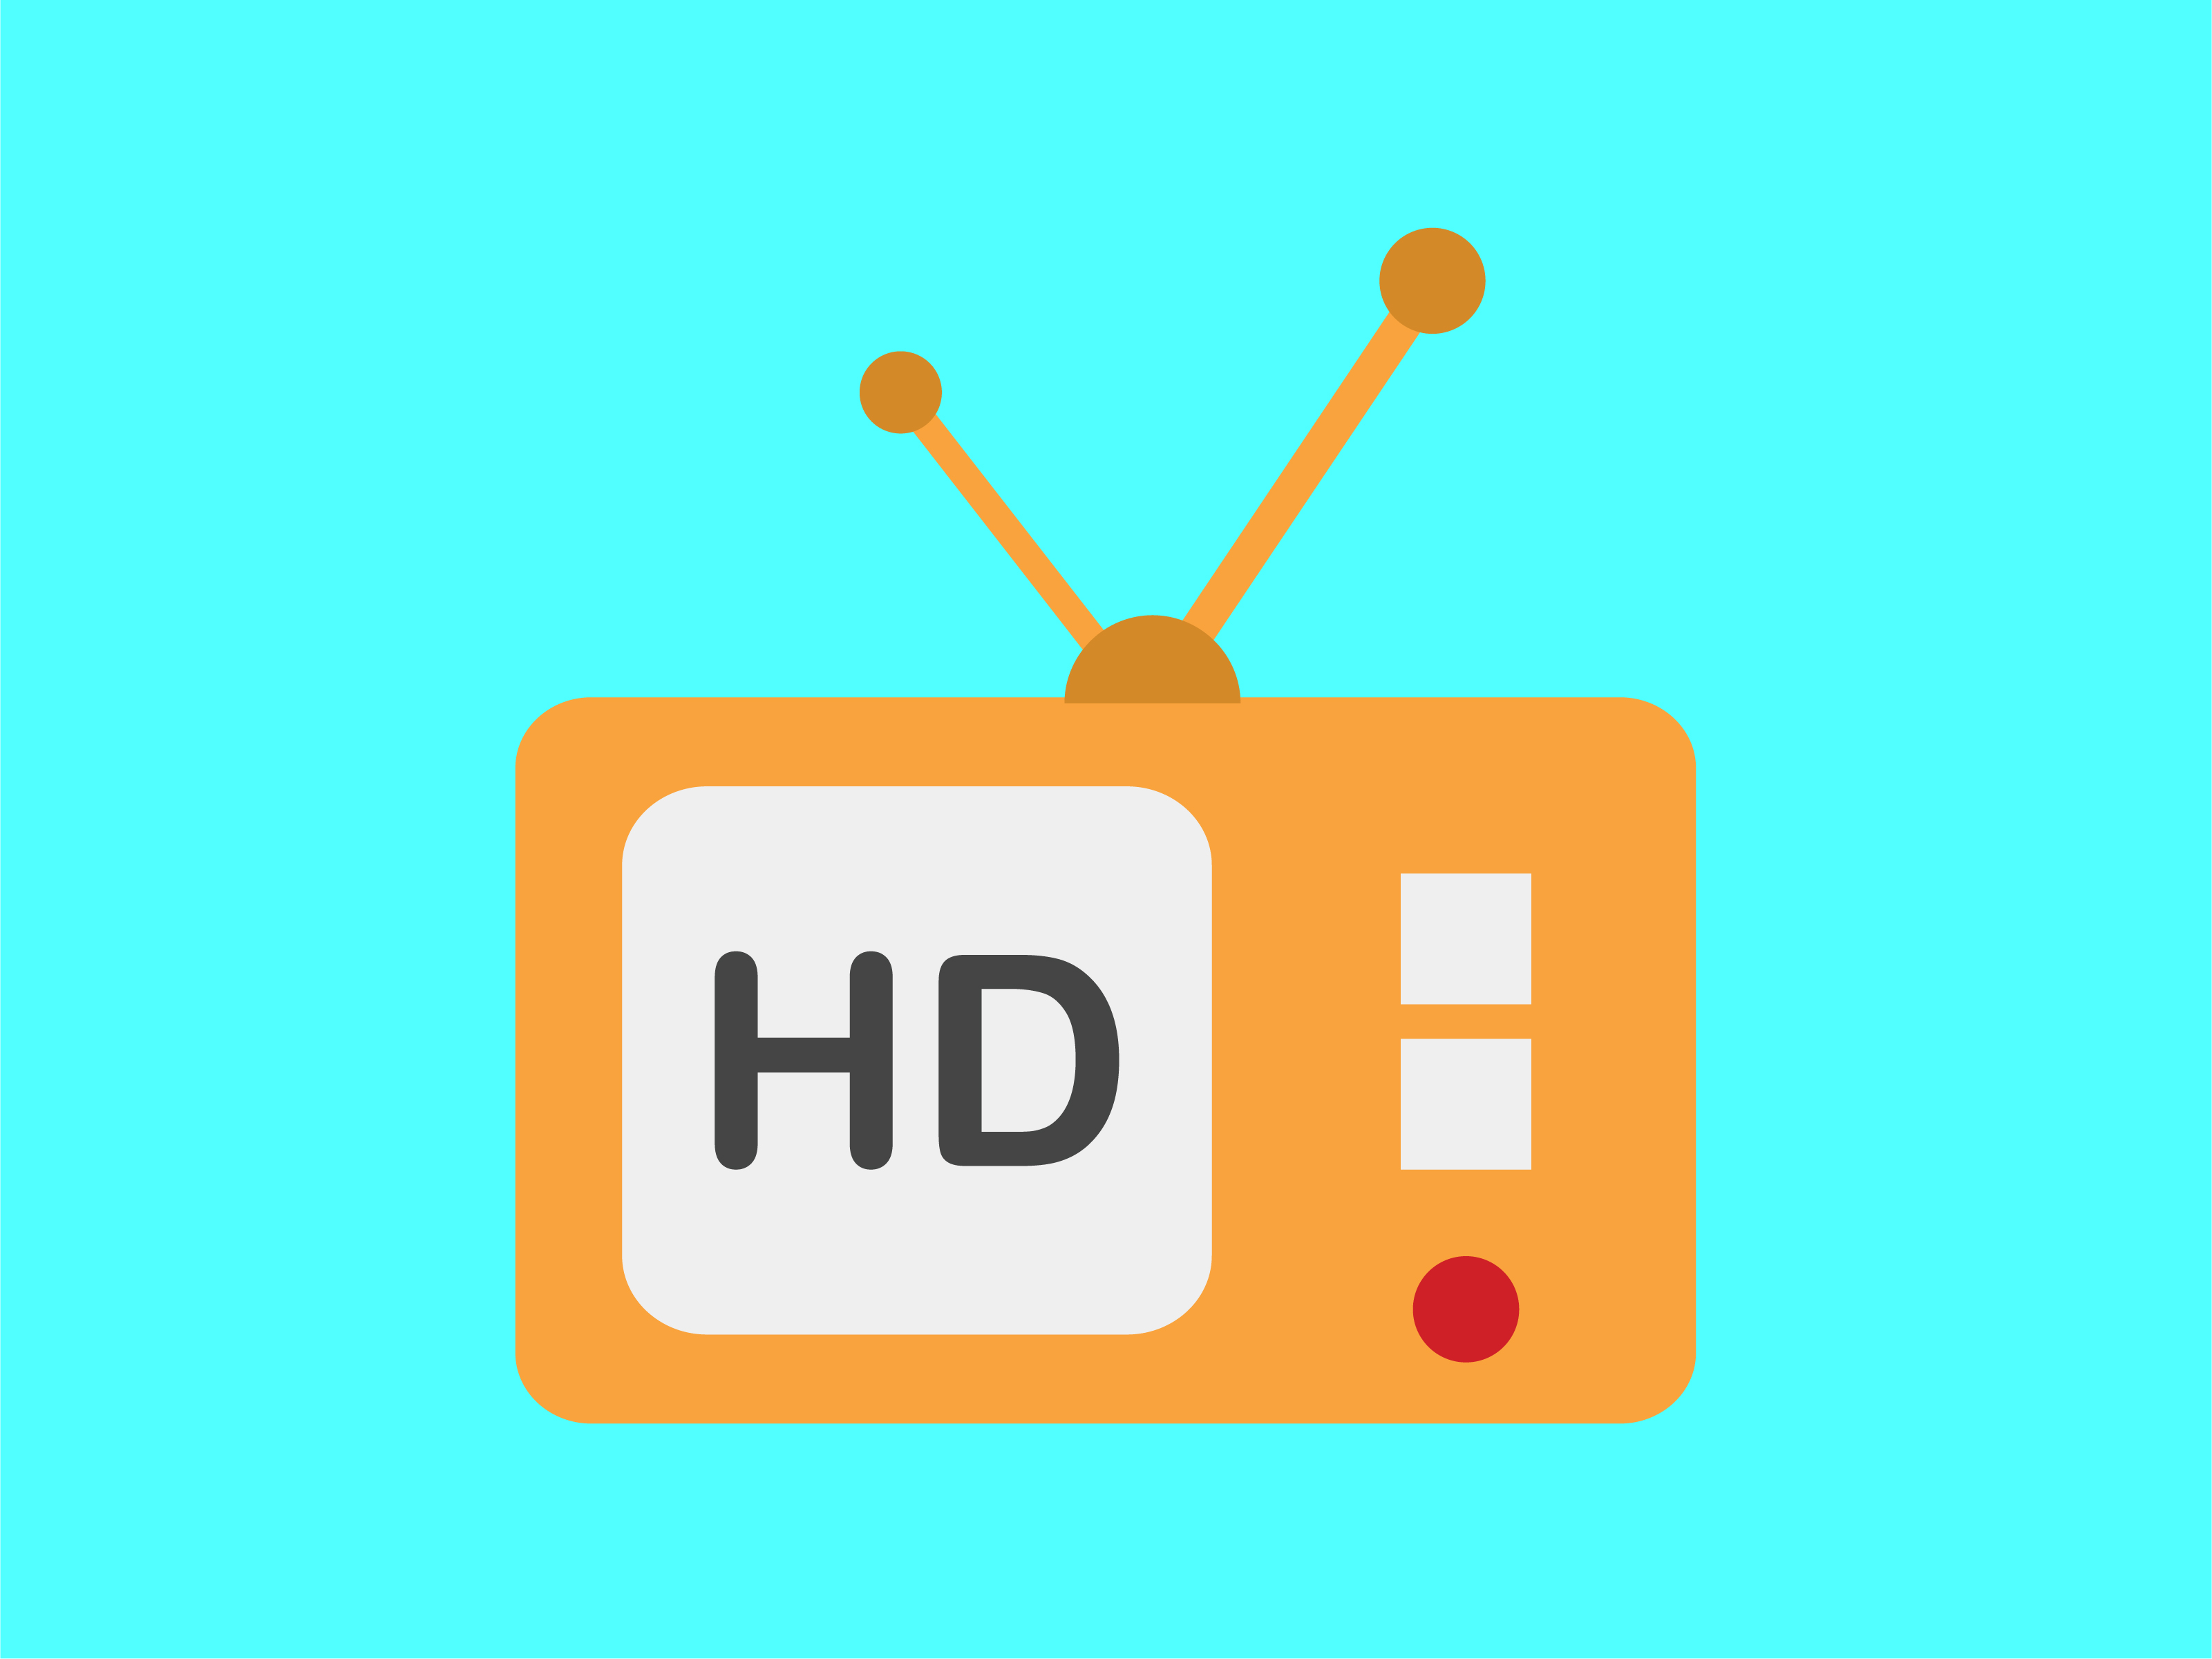 Download Free Icon Old Television Graphic By Meandmydate Creative Fabrica for Cricut Explore, Silhouette and other cutting machines.